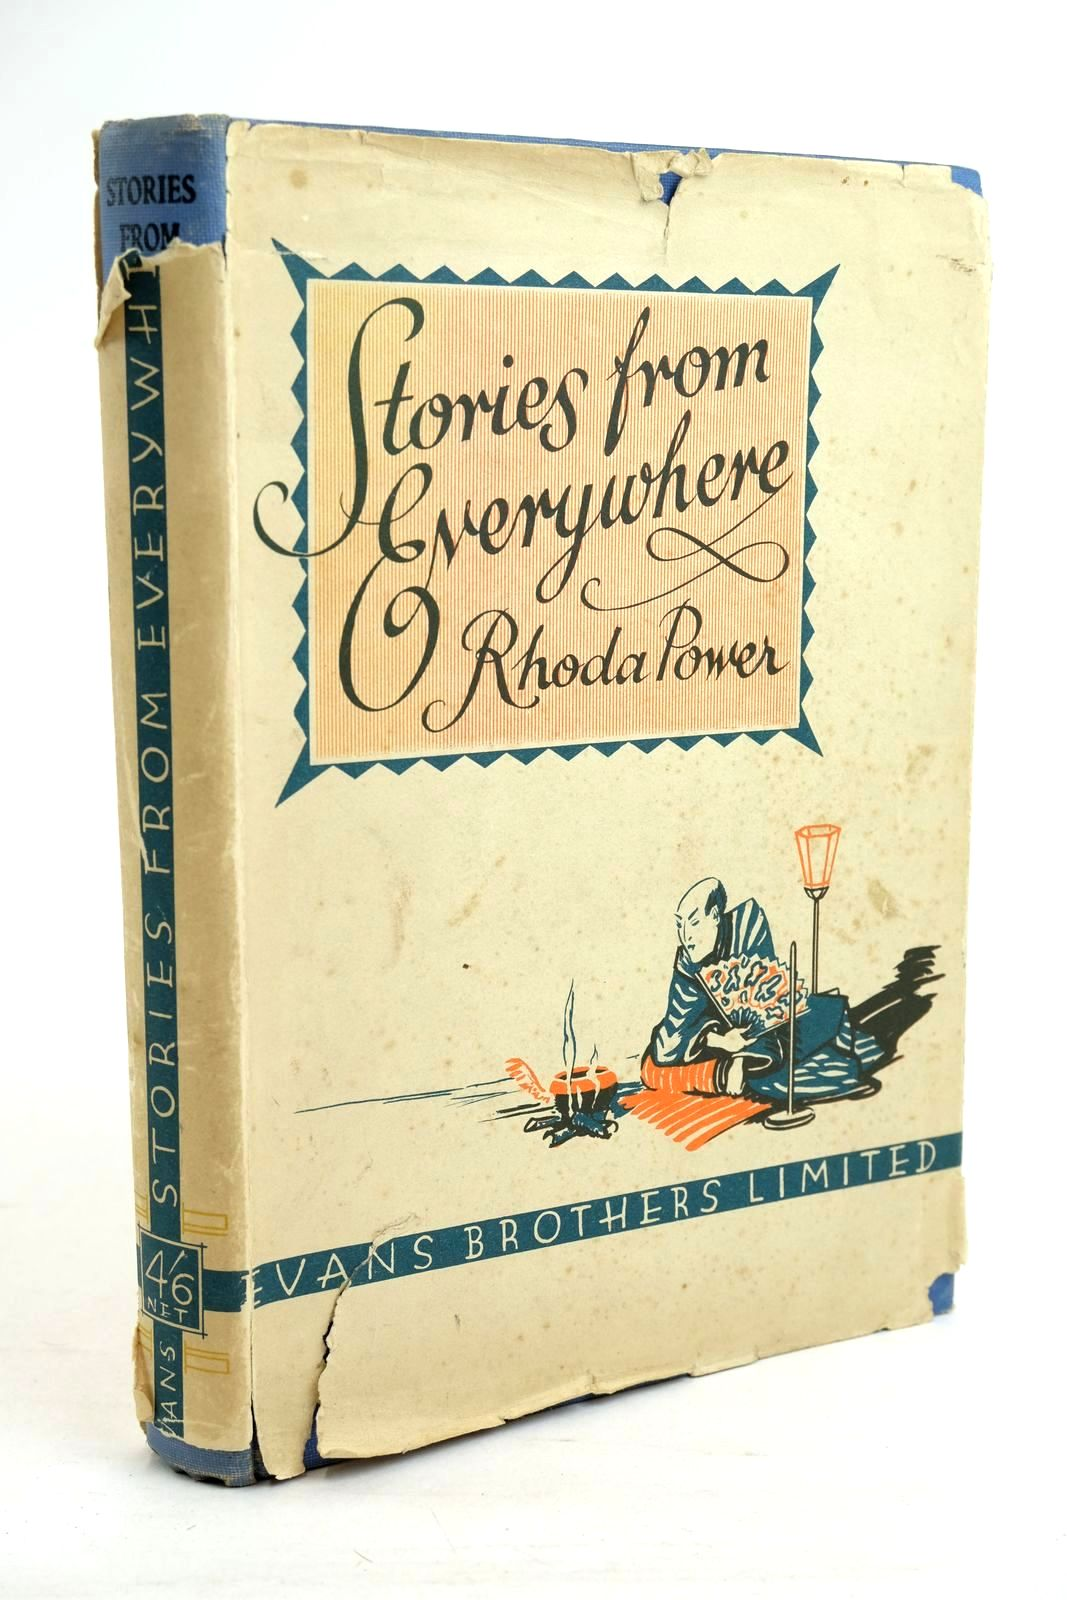 Photo of STORIES FROM EVERYWHERE written by Power, Rhoda illustrated by Brisley, Nina K. published by Evans Brothers Limited (STOCK CODE: 1320440)  for sale by Stella & Rose's Books